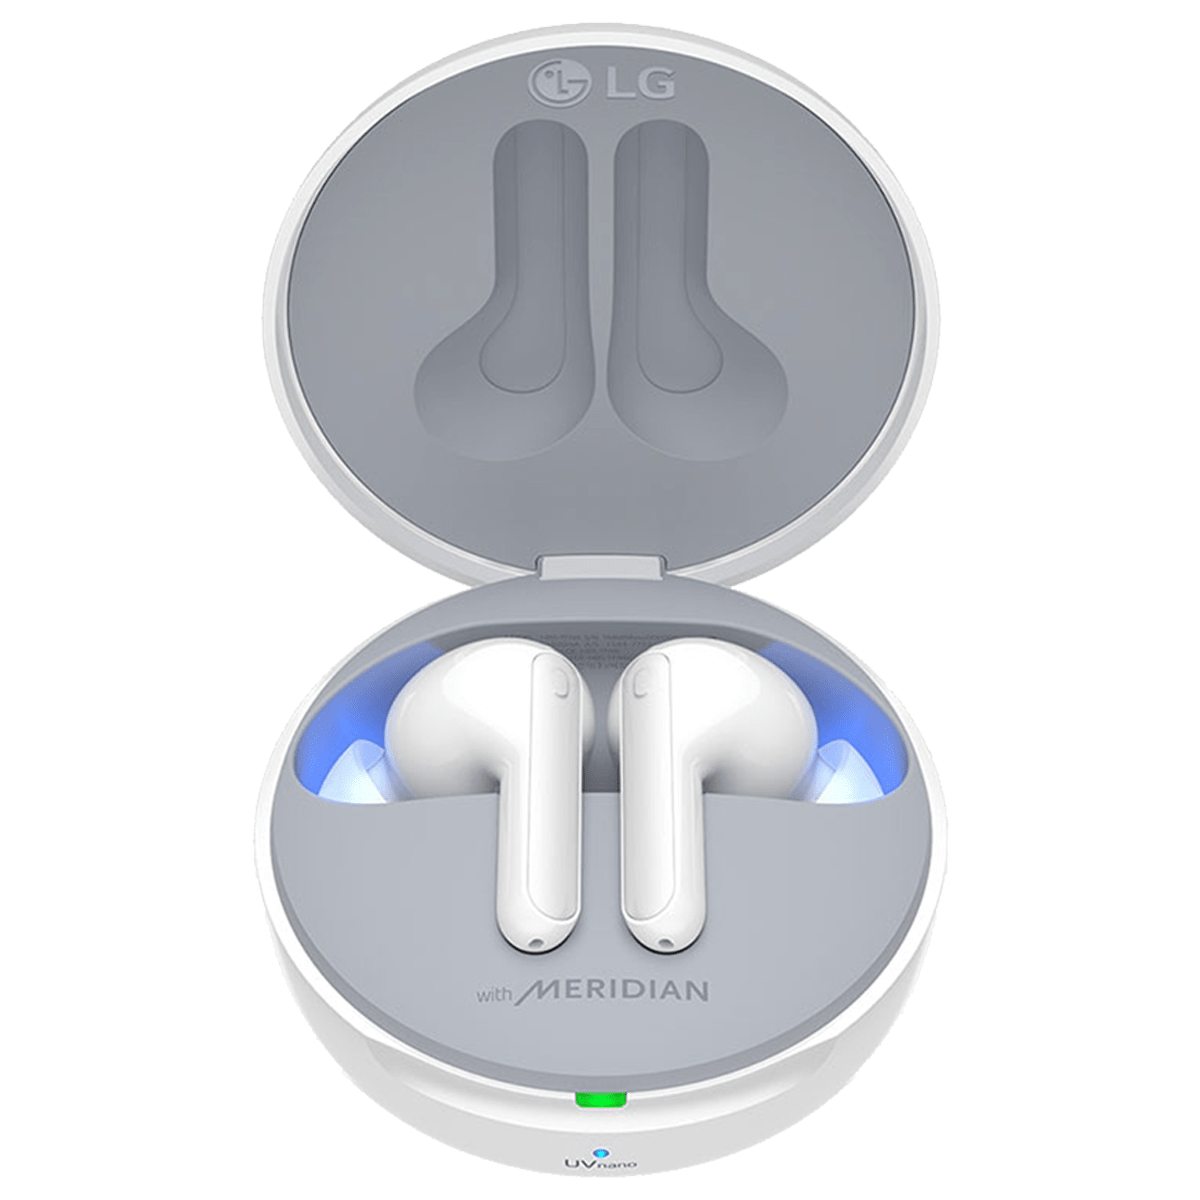 LG Tone Free In-Ear Active Noise Cancellation Truly Wireless Earbuds with Mic (Bluetooth 5.0, Meridian Technology, HBS-FN7.ABILWH, White)